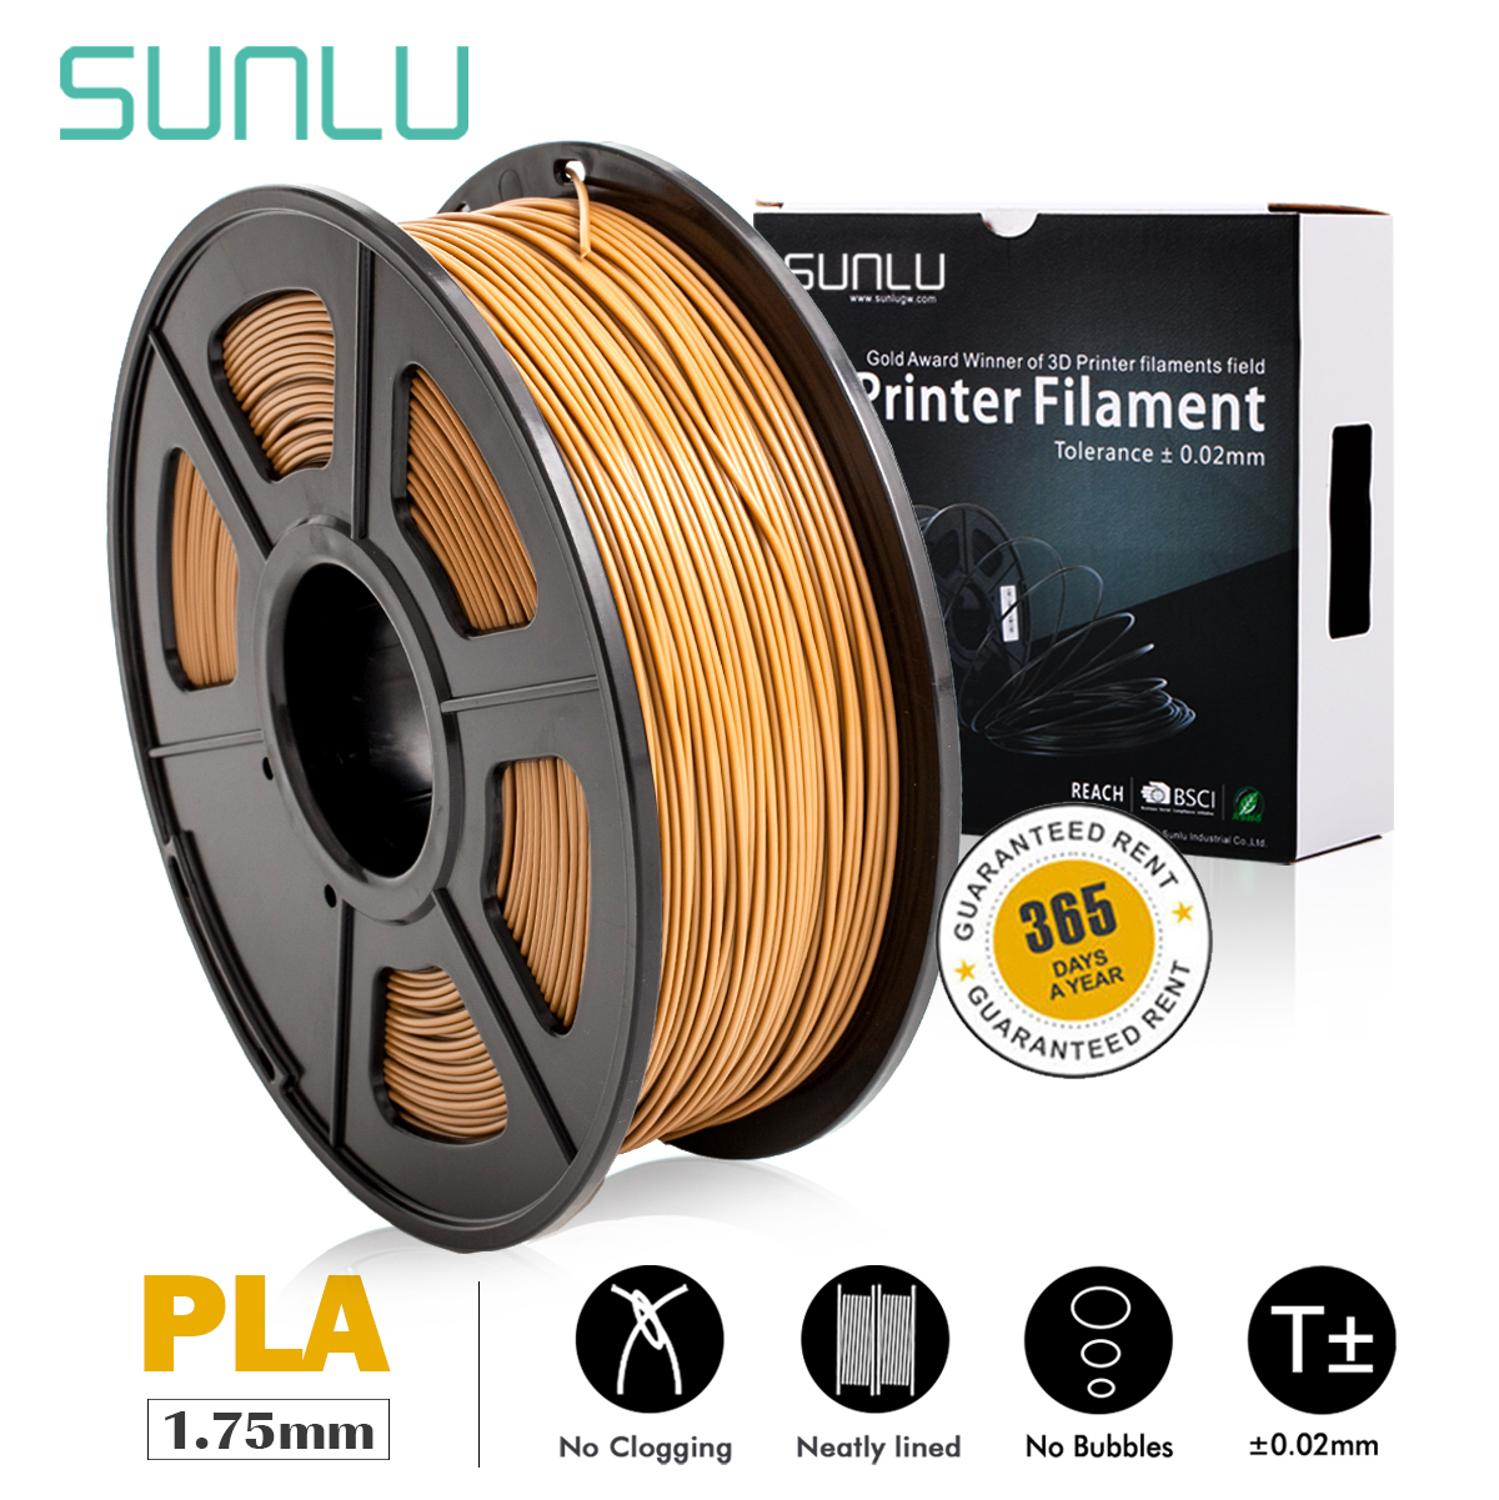 3D PLA Printer Filament 1.75mm 1kg/Roll 2.2lb Spool SUNLU Factory free ship new with CE Certification for 3D Printer and 3D Pen 3D Printing Materials     - title=